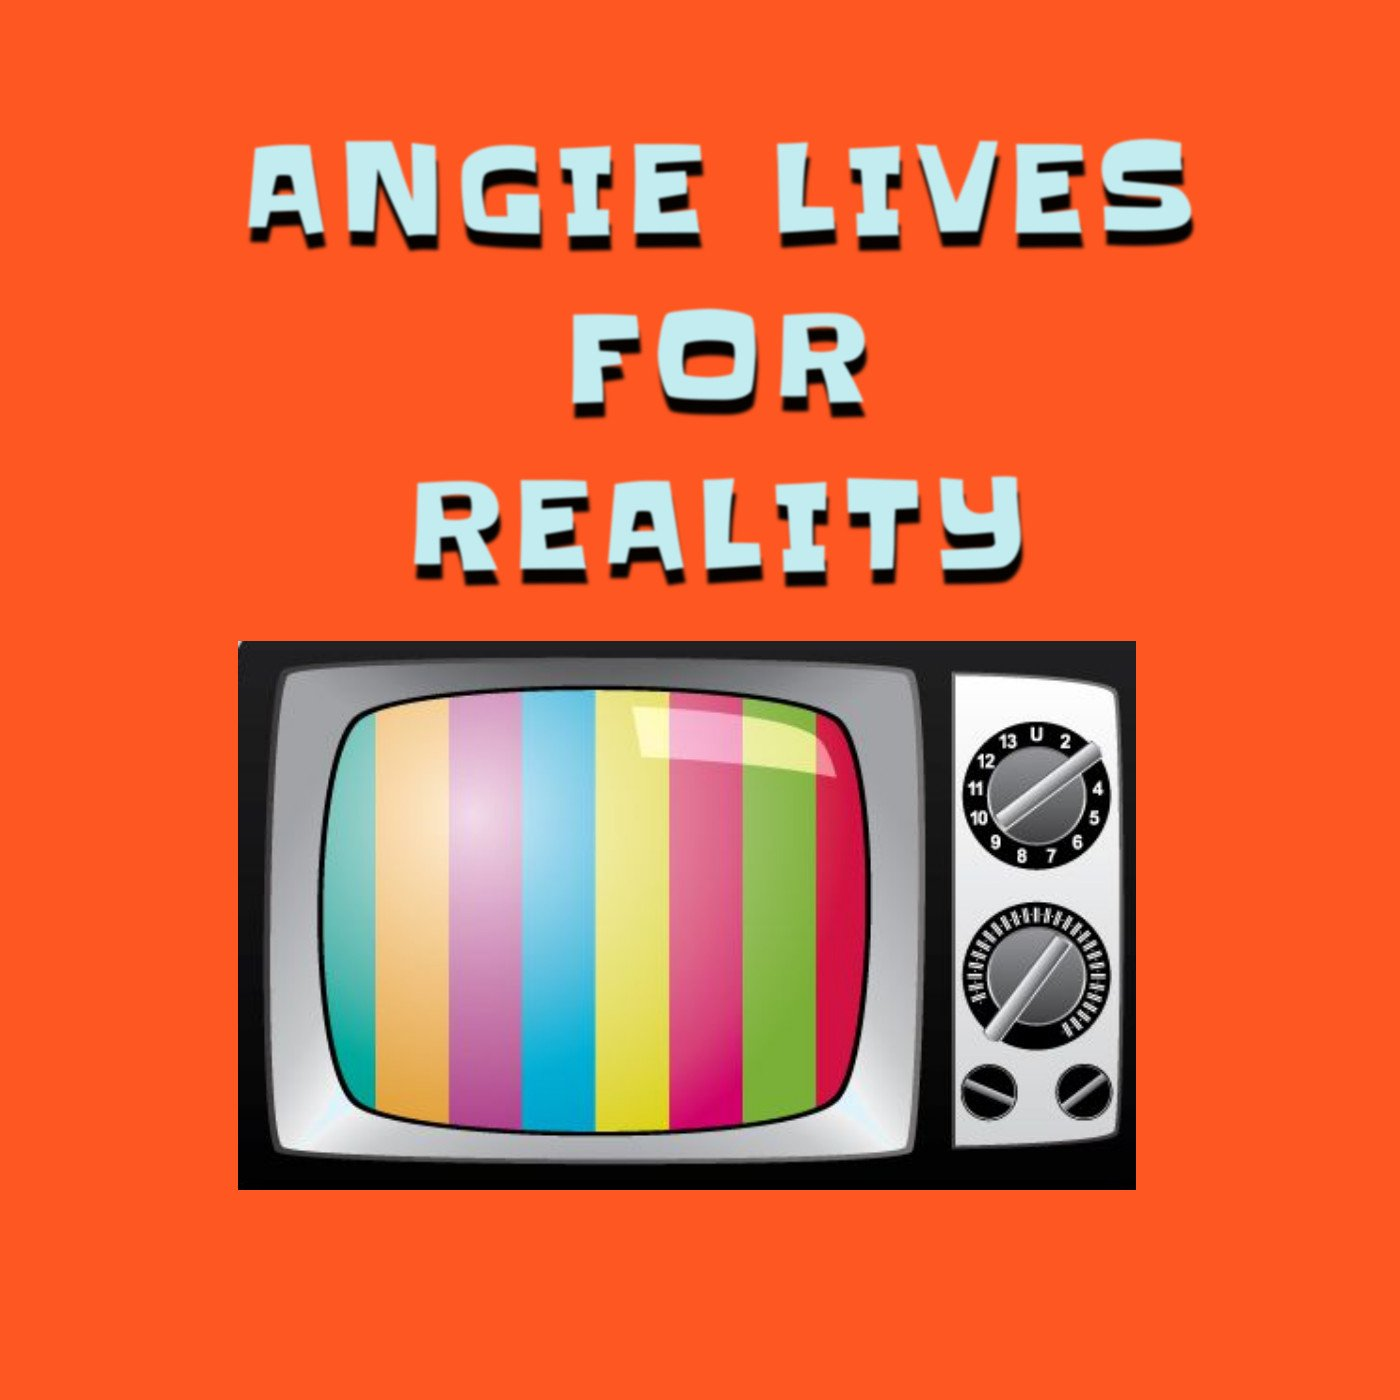 Hi, I am Angie........and I live for reality! I am a connoisseur of all things BRAVO from an Aussie perspective..that means AUTHENTIC. G'day to you all!